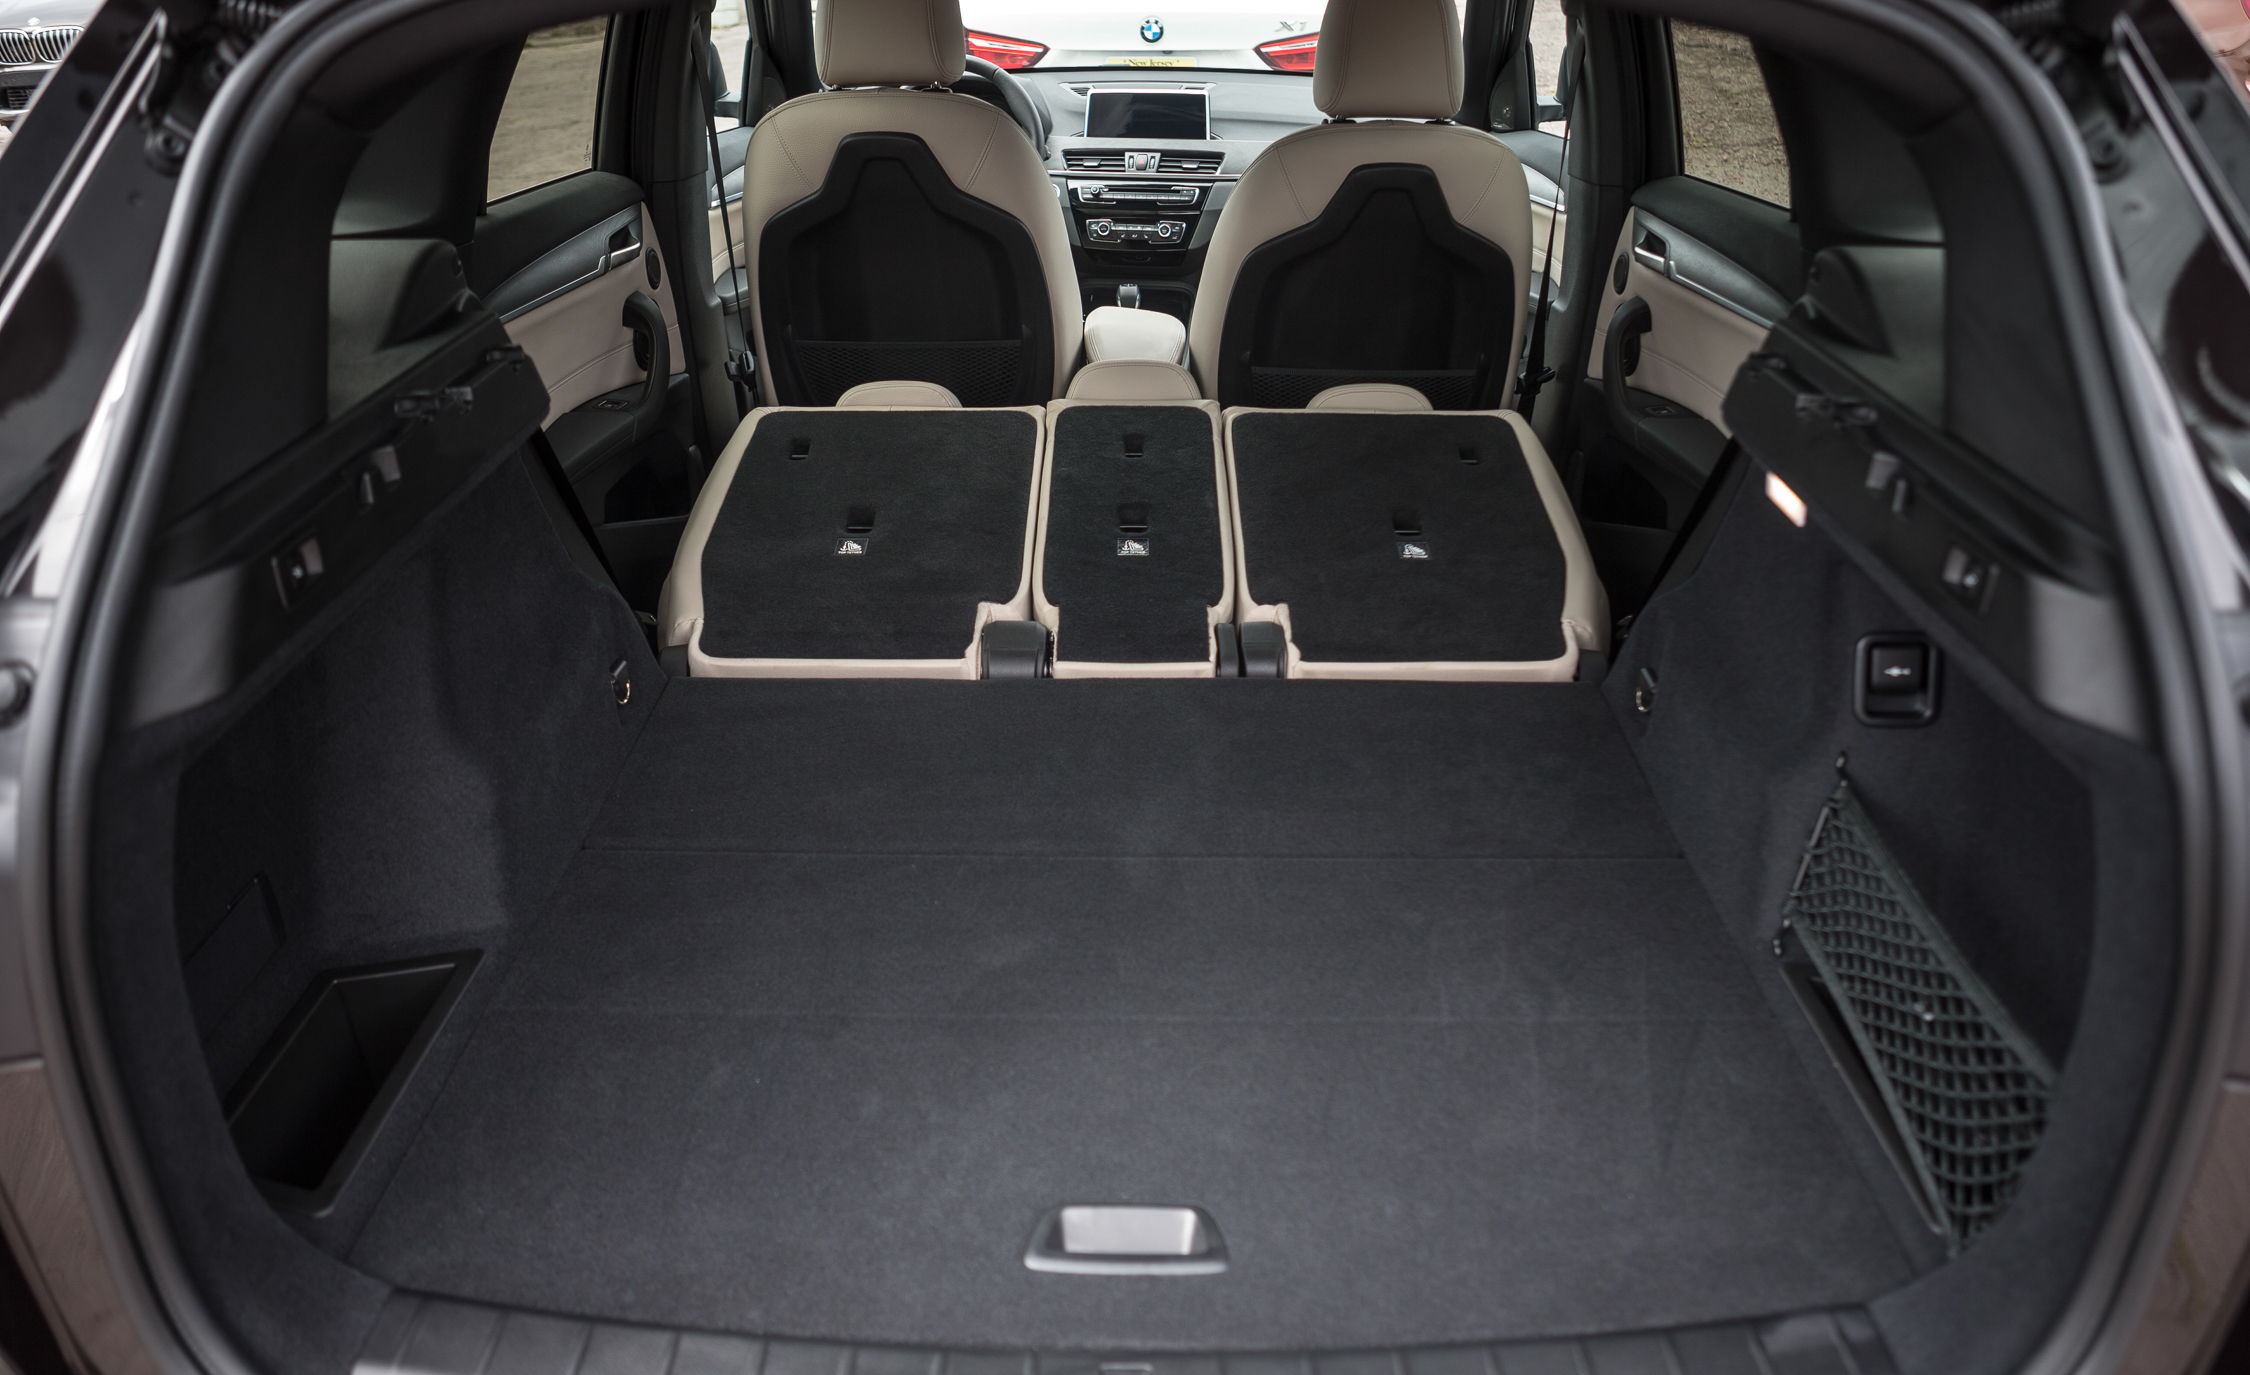 2016 BMW X1 Interior View Cargo Seats Folded Down (View 15 of 36)